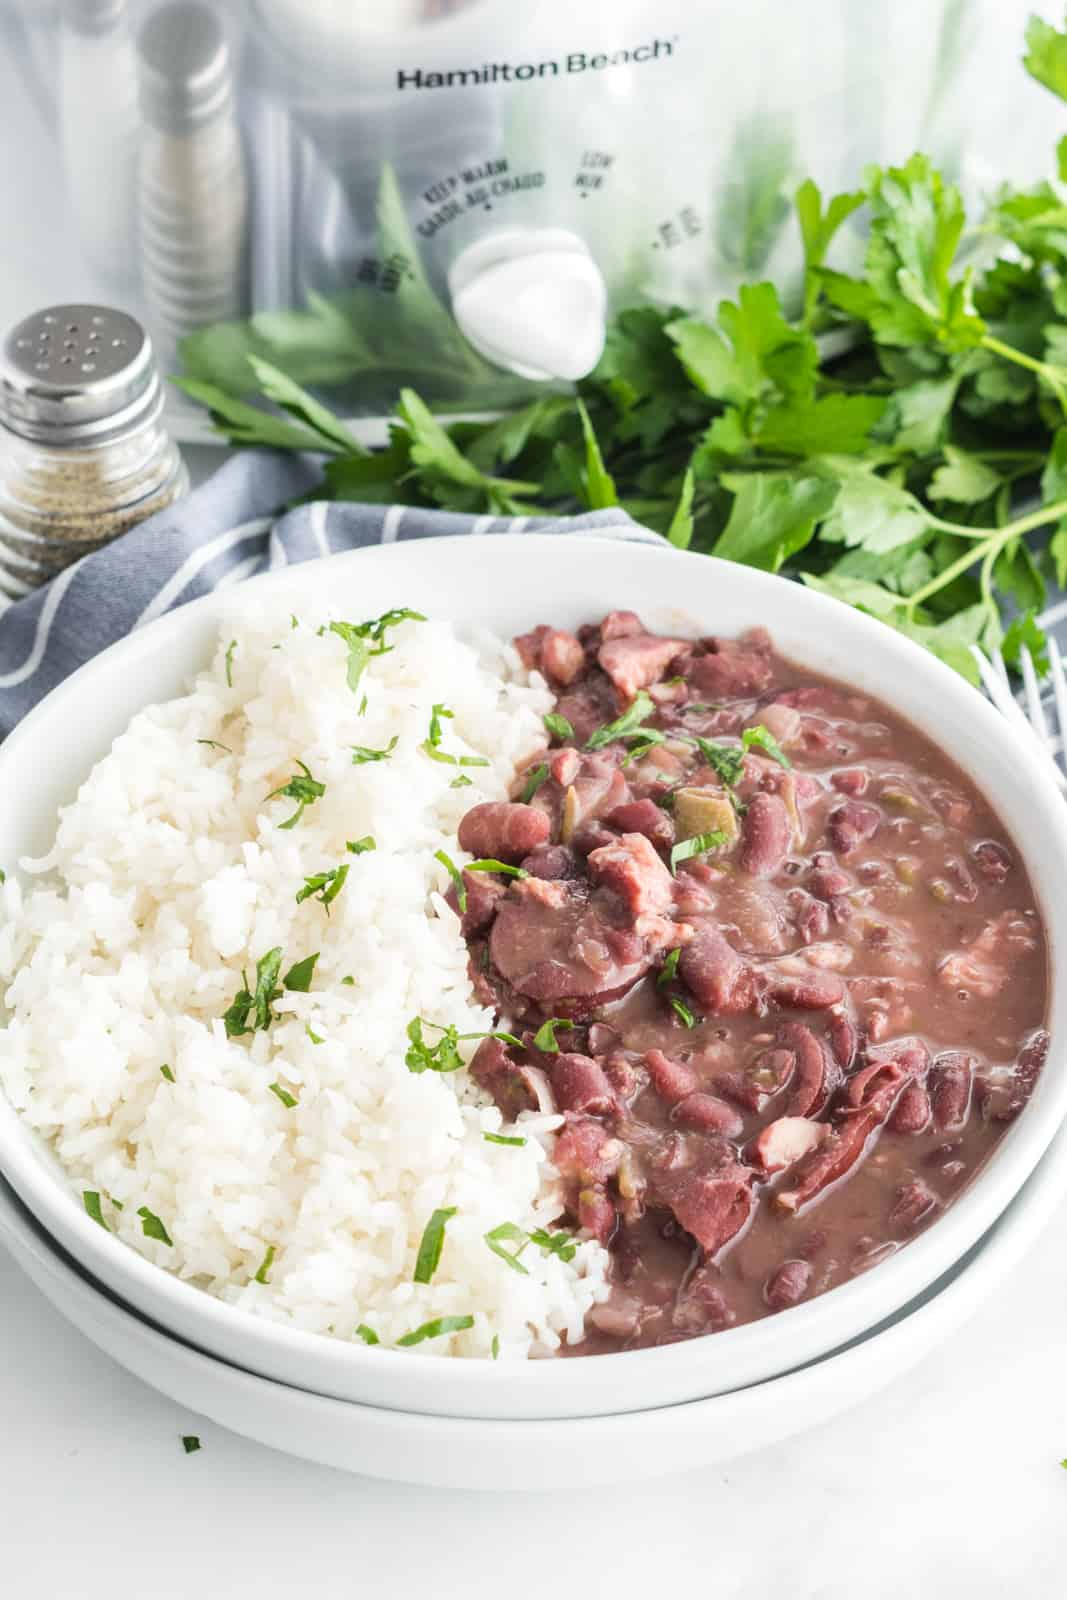 Red beans in rice in bowl with slow cooker and parsley in background